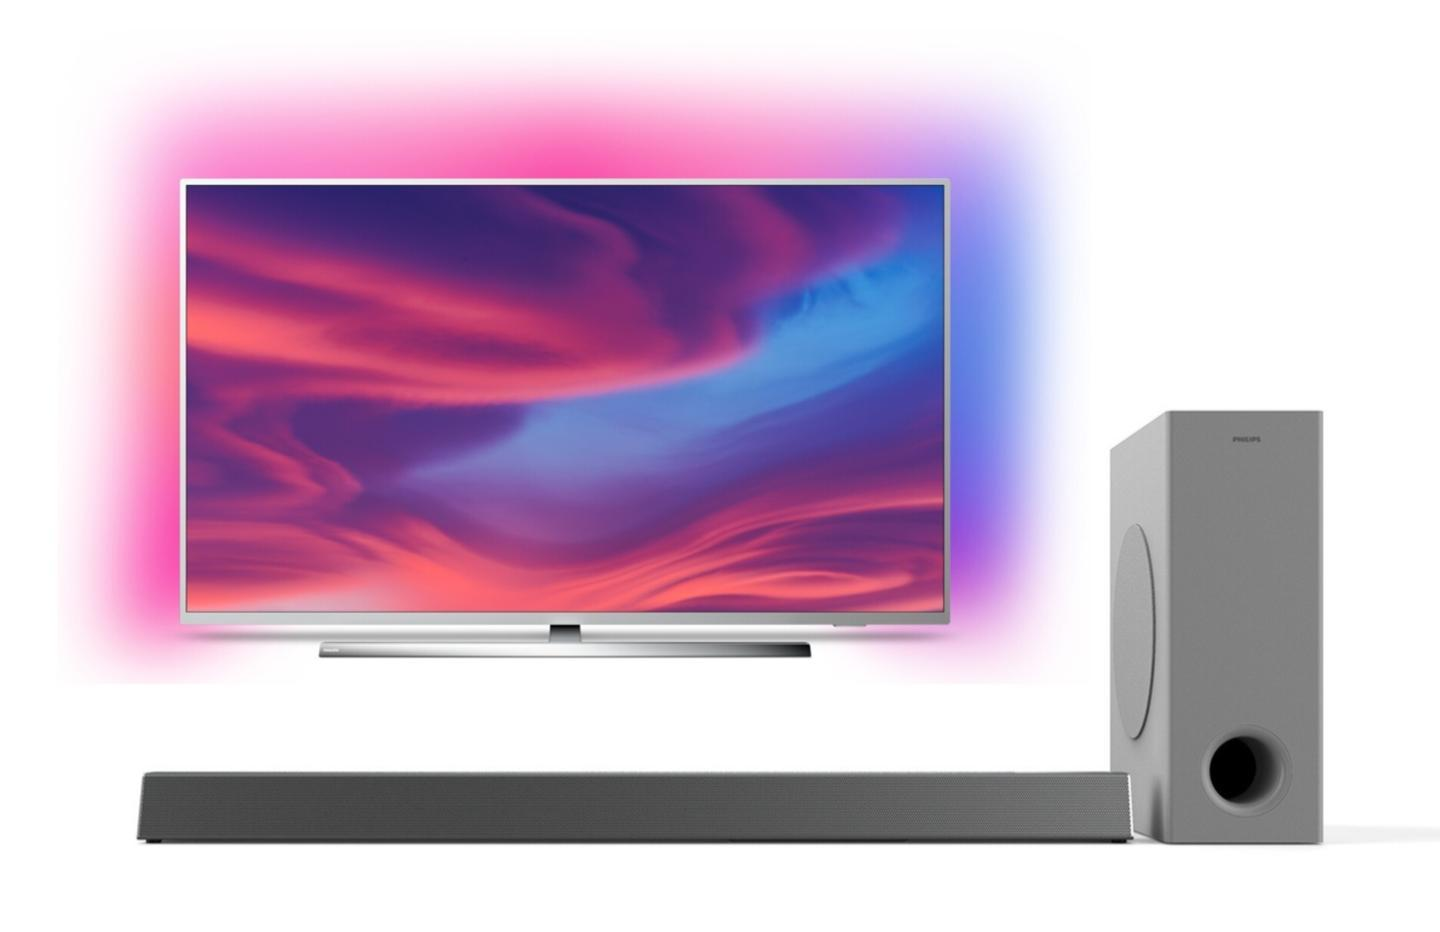 L'excellent TV Philips The One 65″ à prix cassé avec une barre de son offerte